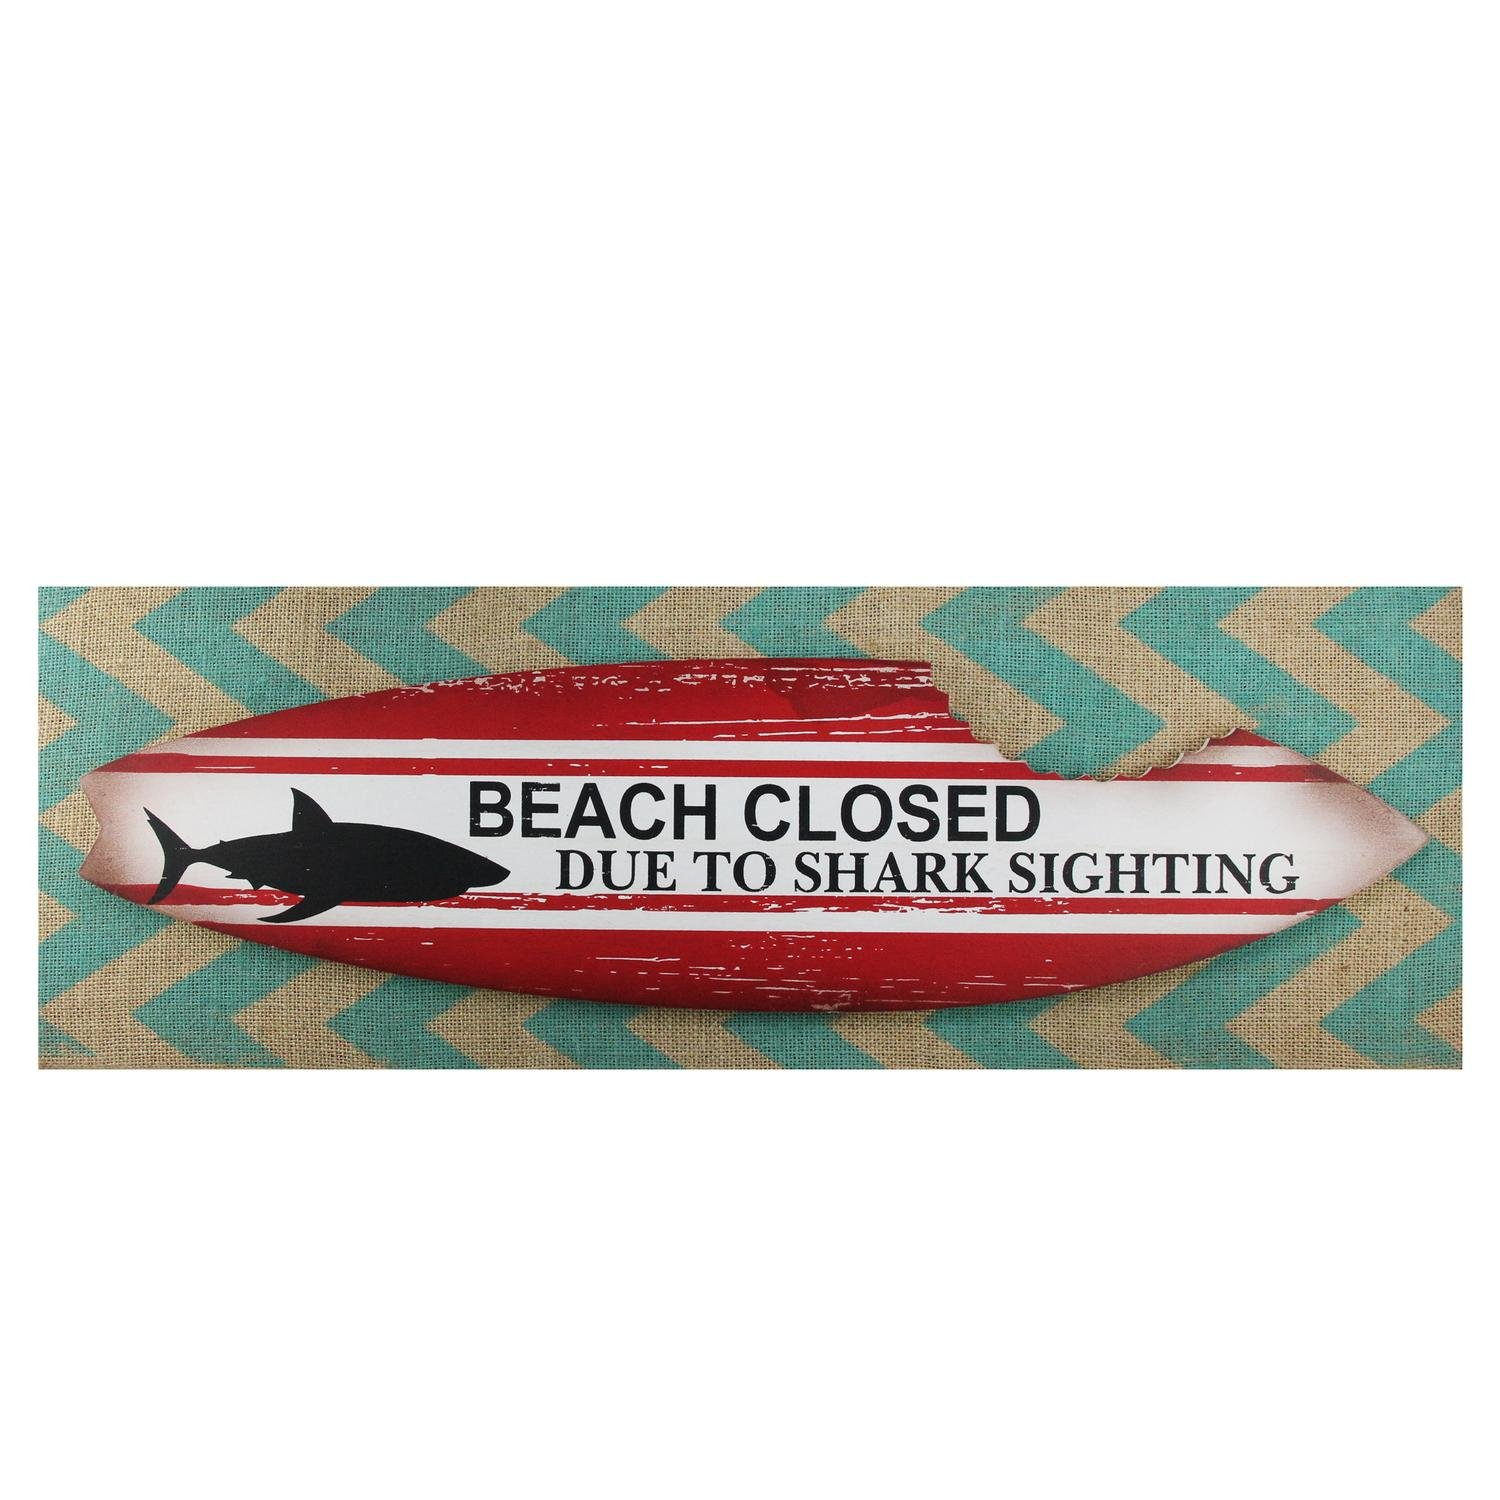 Northlight Beach Closed Shark Bitten Surfboard Linen Burlap Wall Art 24""